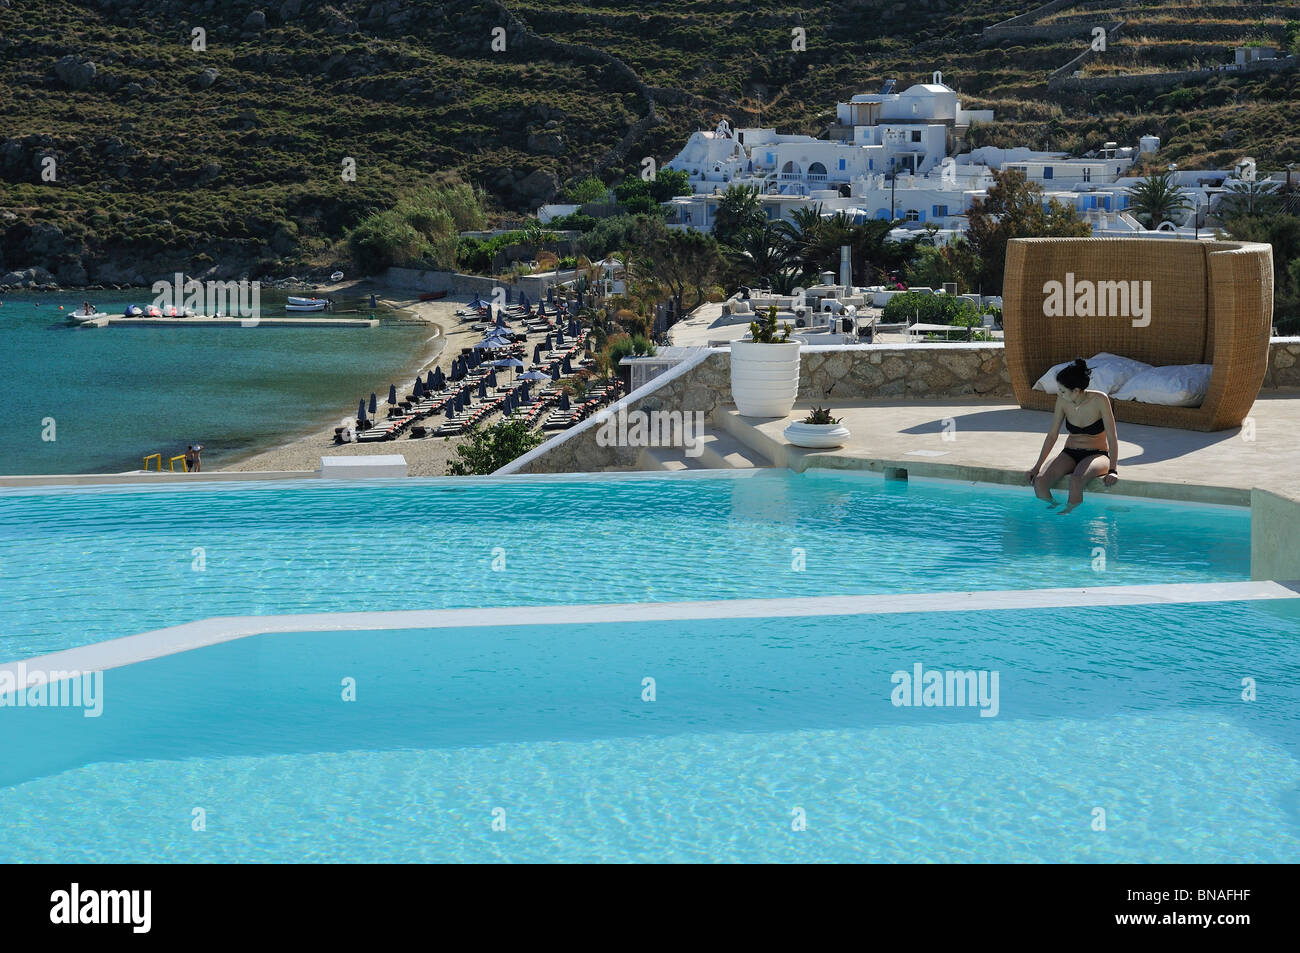 Best Island Beaches For Partying Mykonos St Barts: Psarou Beach And Mykonos Stock Photos & Psarou Beach And